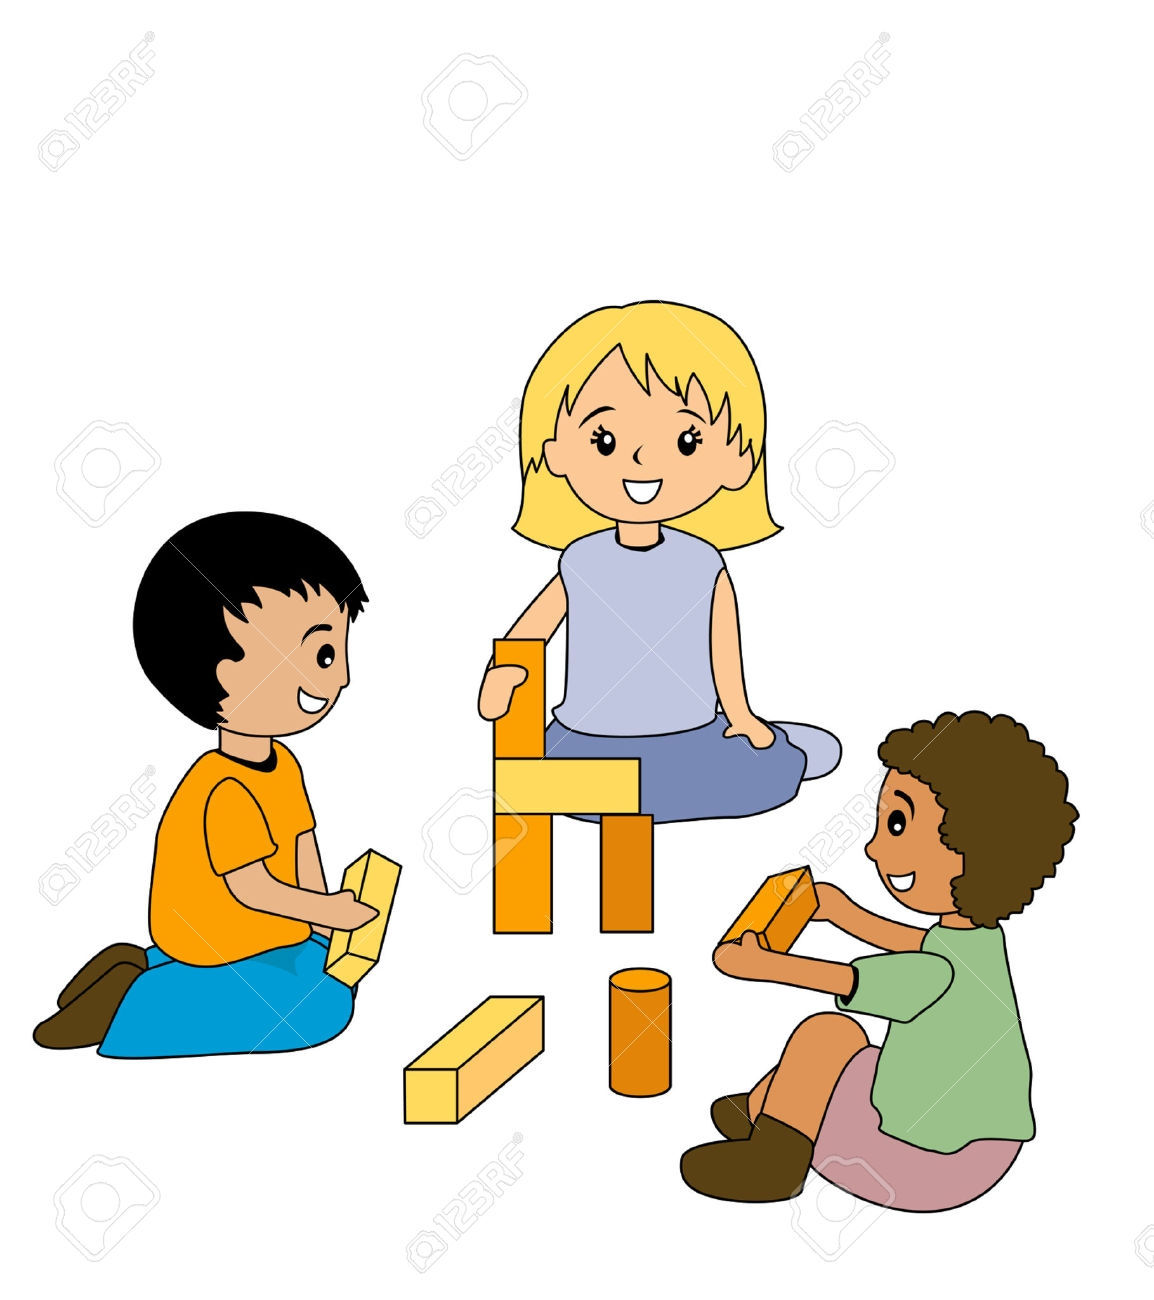 Kids clipartfest kidsplayingblocks . Clipart boy building blocks